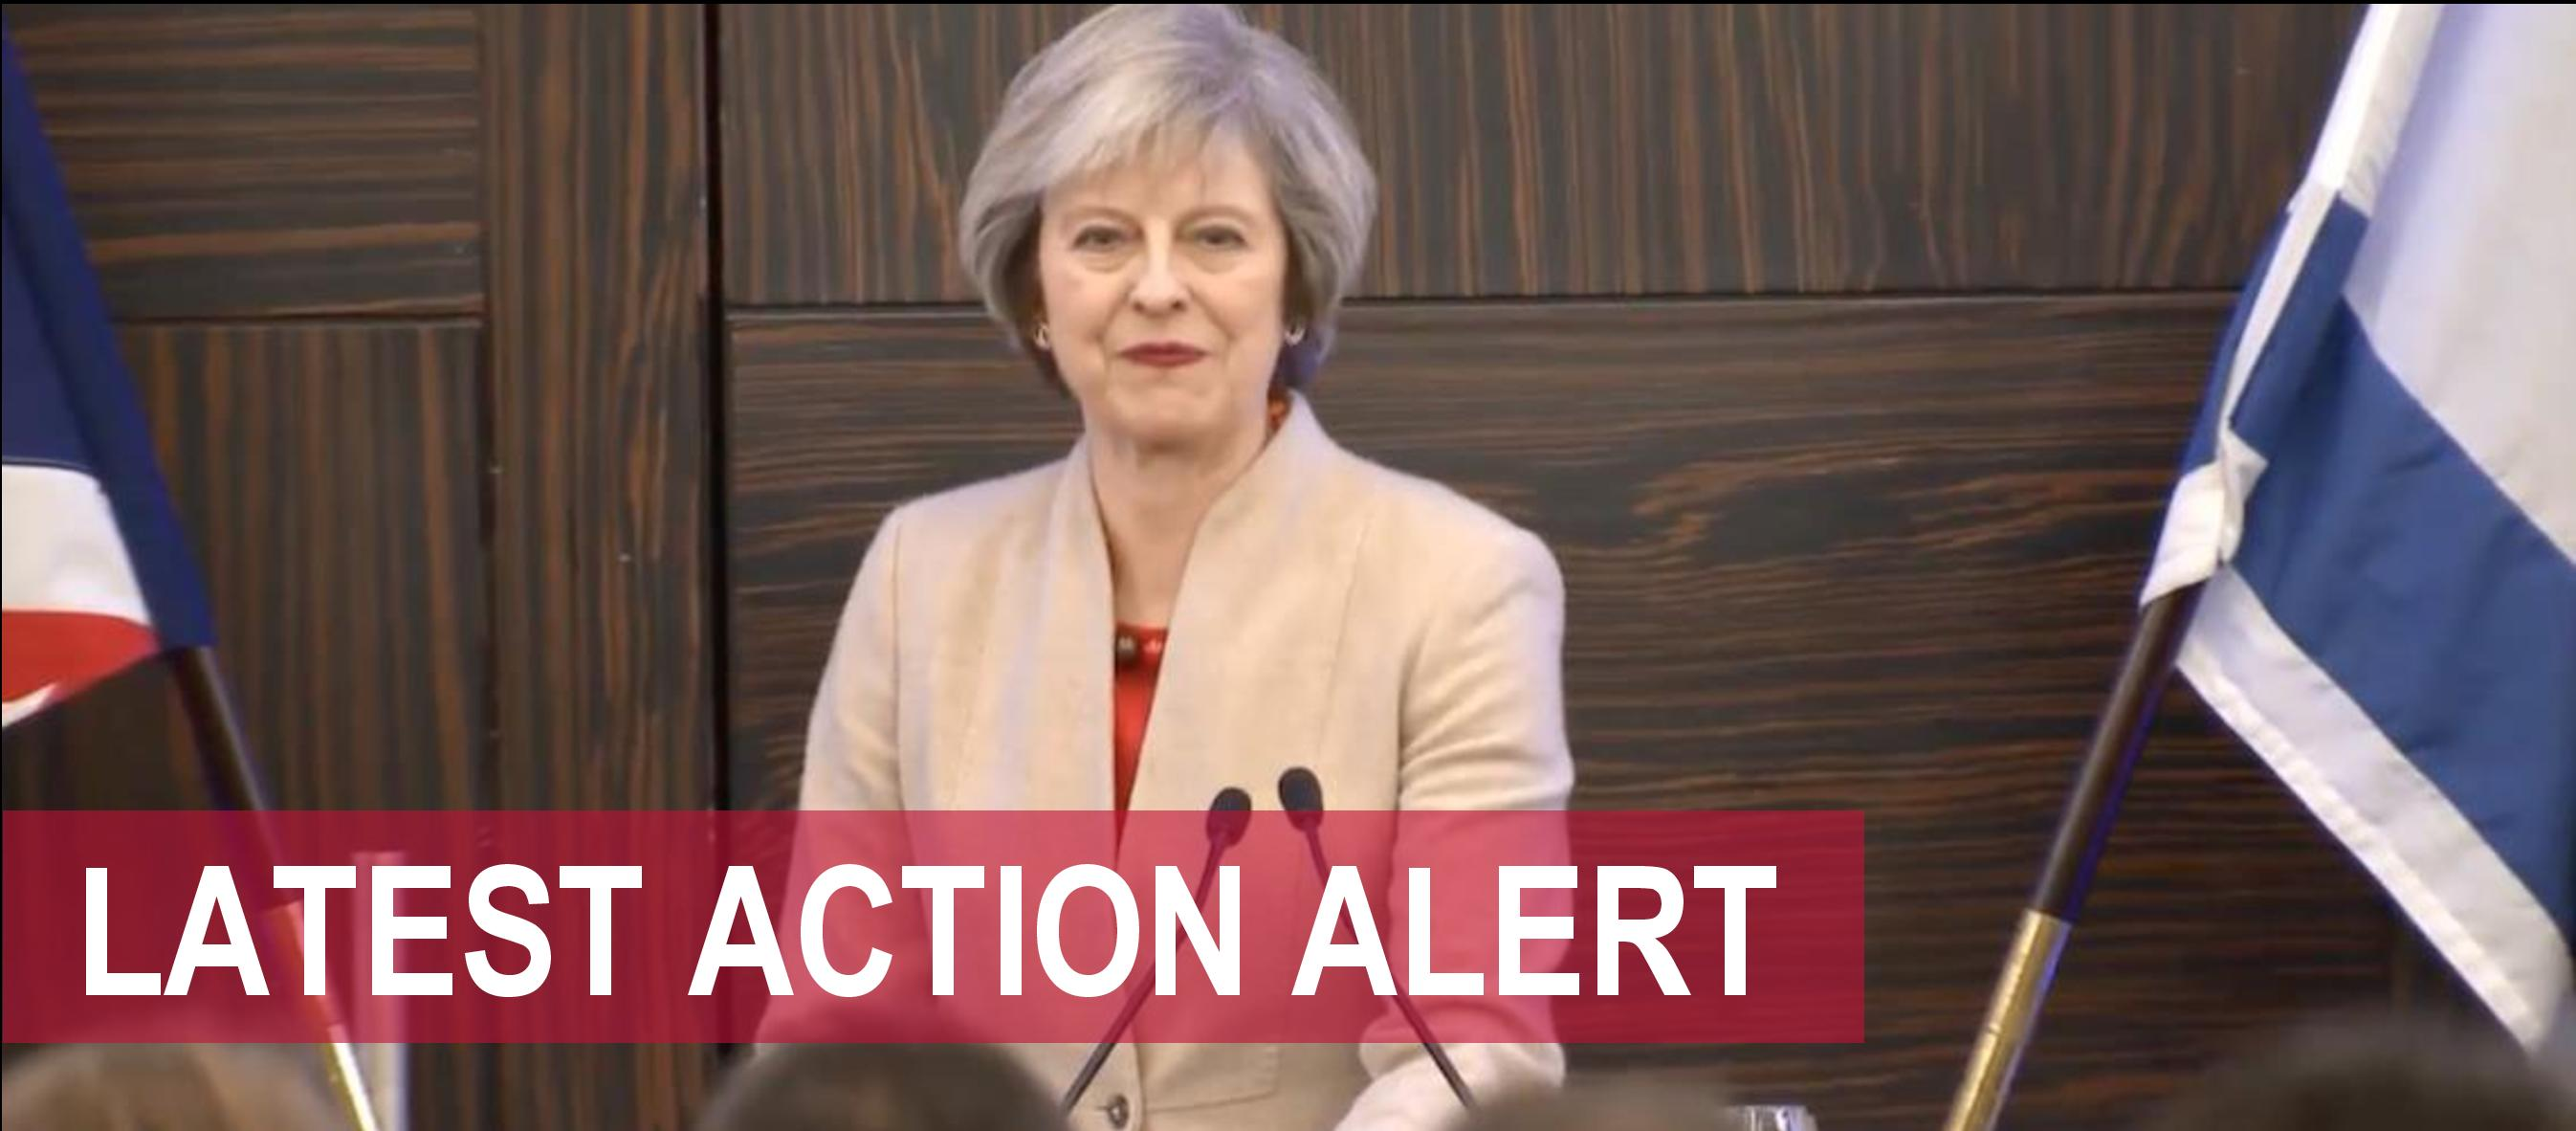 ACT NOW: UK votes against Israel at UN – Contact PM Theresa May